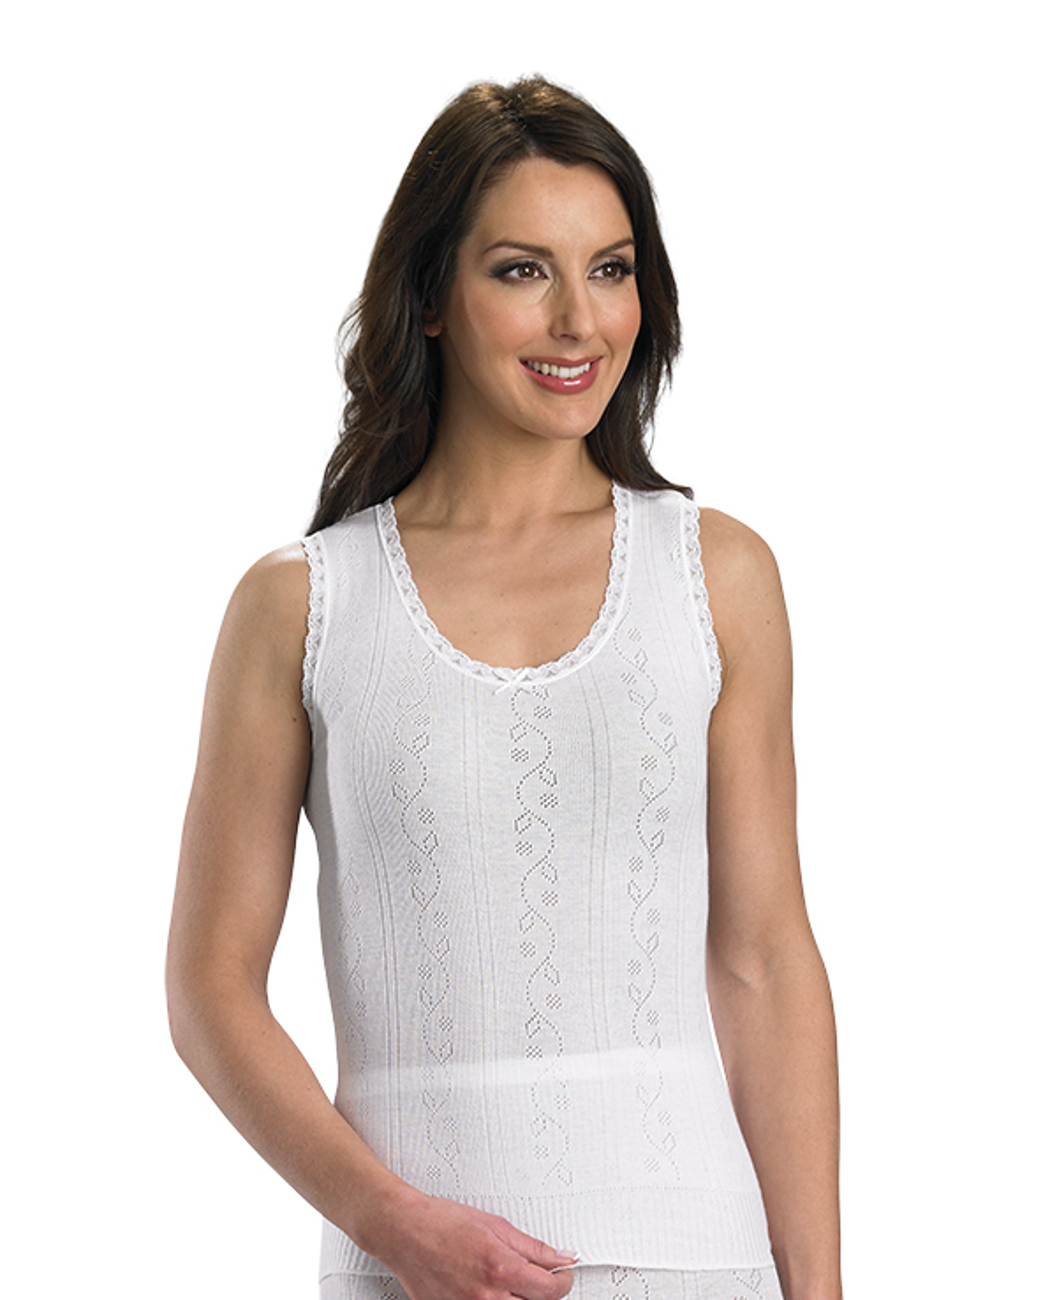 getdangero.ga: cotton lace camisole. camisole for all lace tank tops for women are made of comfy cotton Yenita Women's Cotton Camisole Undershirt Lace (Pack of 2) % Cotton Tank Top. by Yenita. $ $ 24 95 Prime. FREE Shipping on eligible orders. Some sizes/colors are Prime eligible.